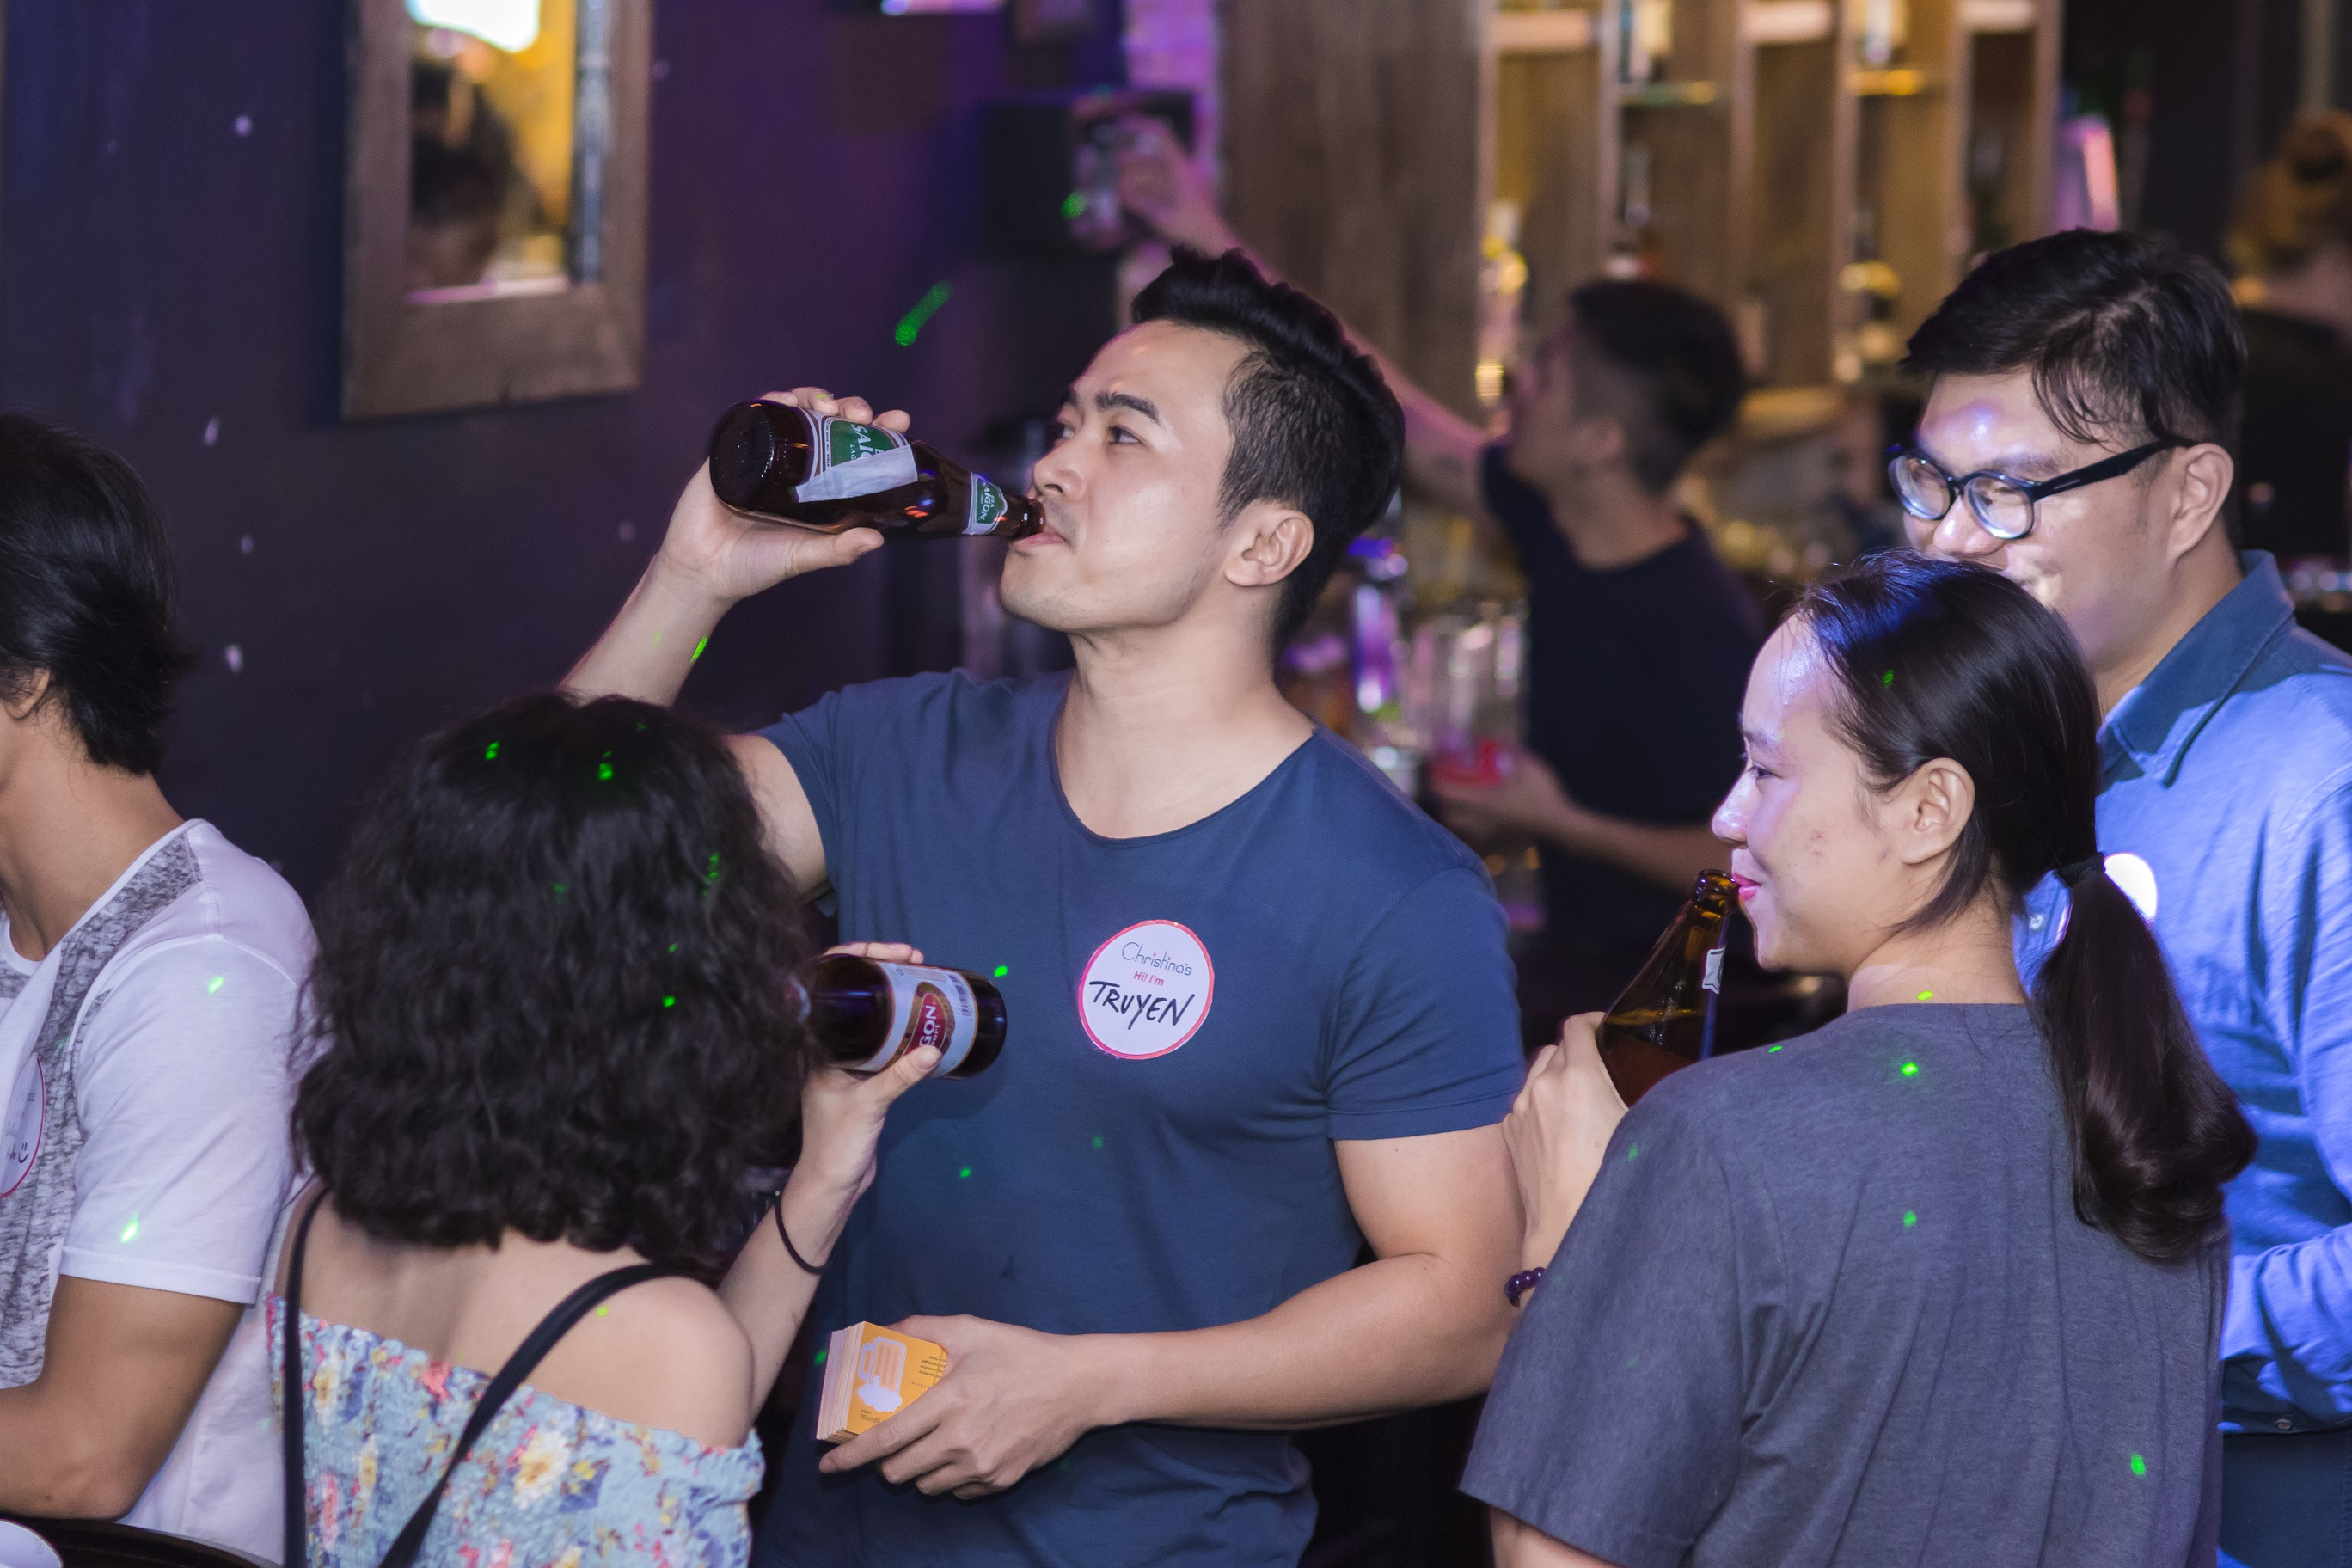 Drinking in Saigon, Vietnam - Nightlife & Craft Beers - The Christina's Blog